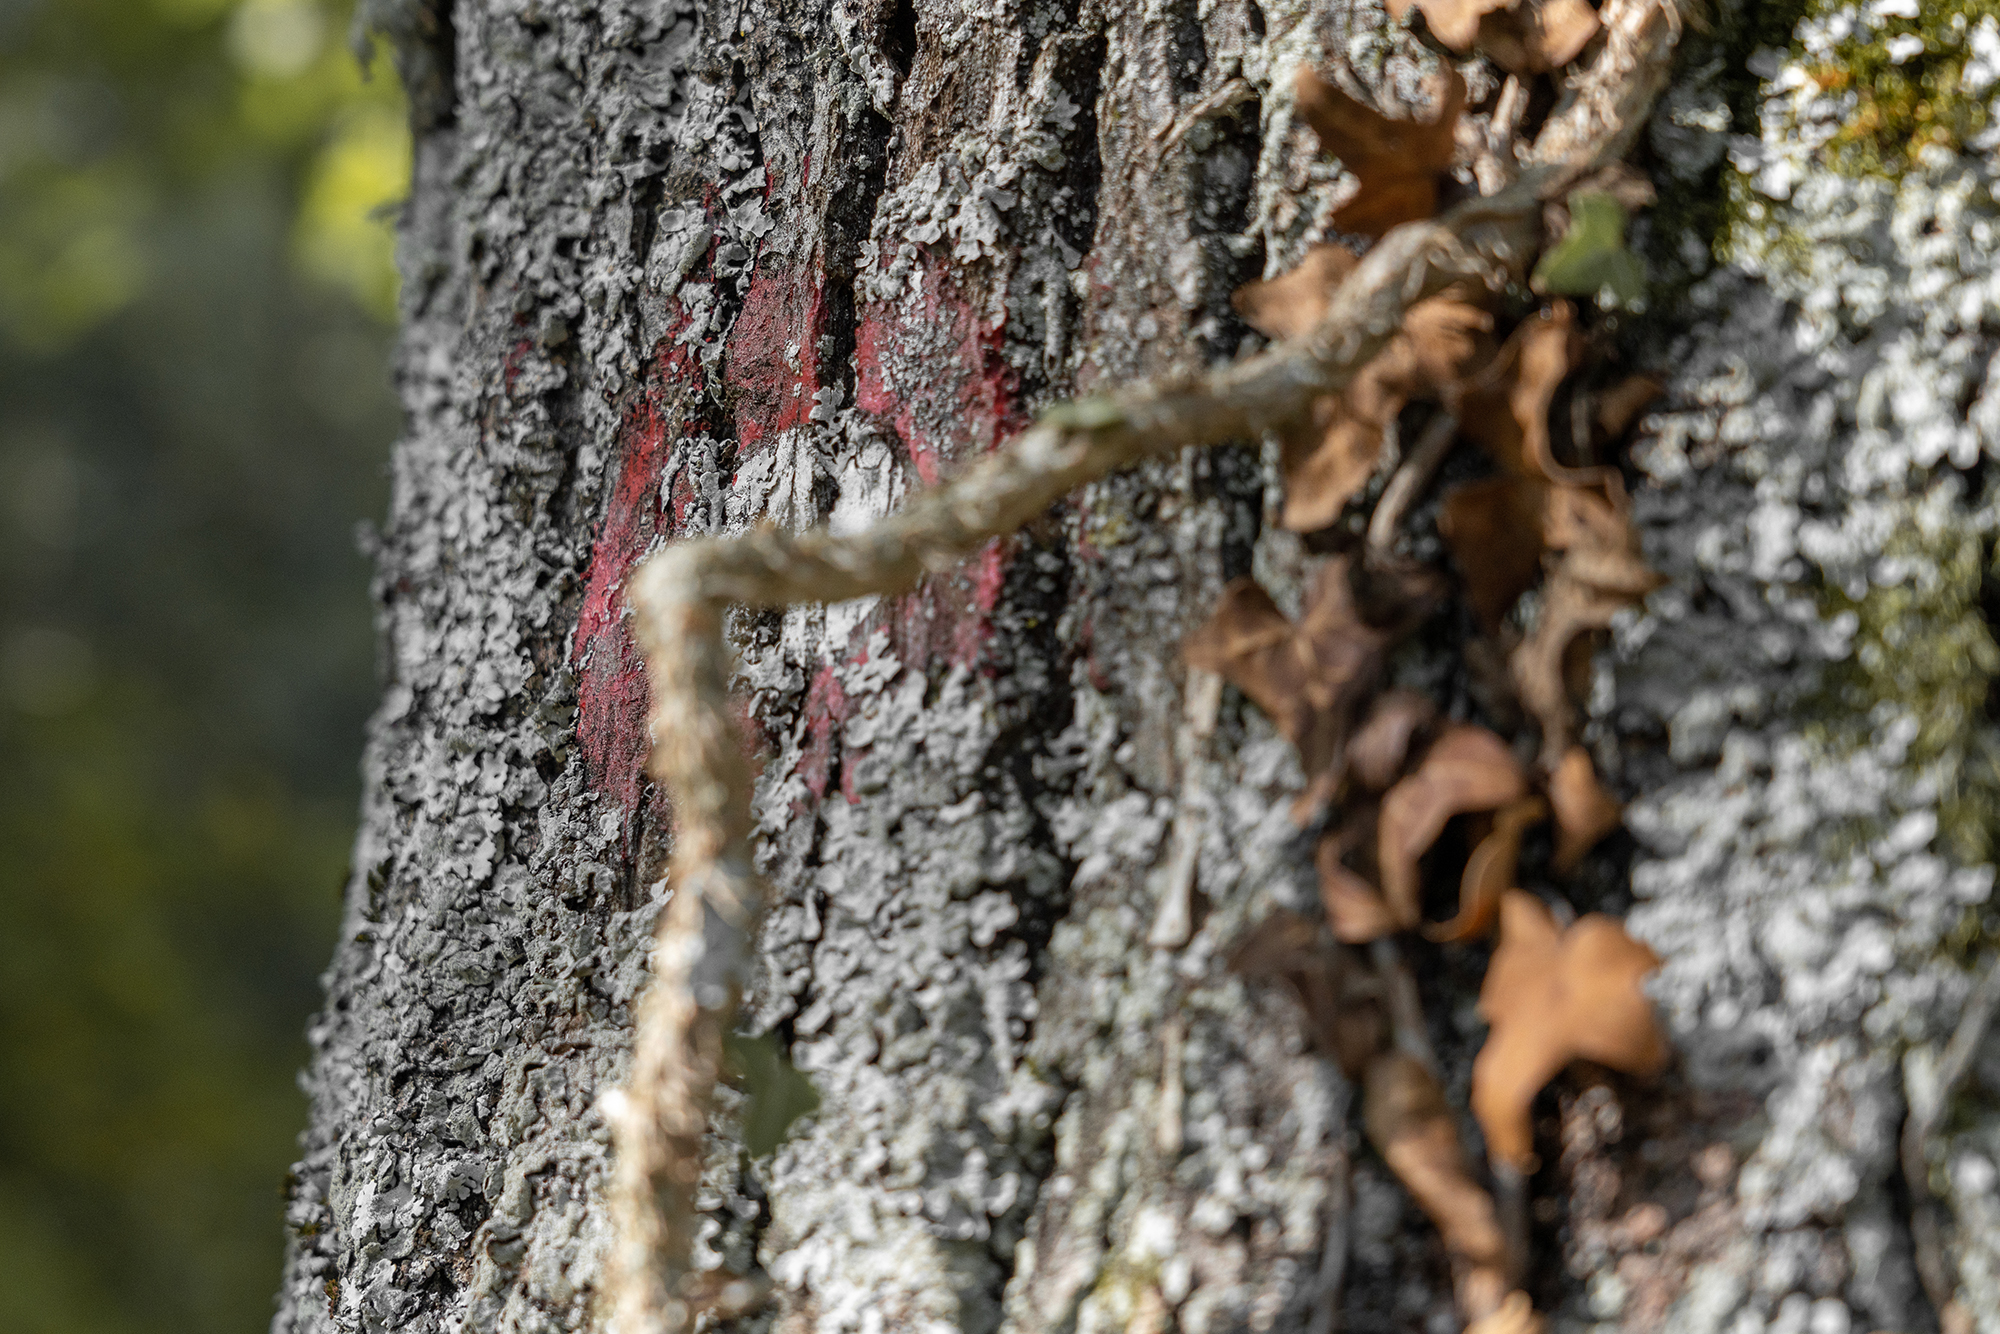 September 29, 2018 - Zasavska Sveta gora: Photo from a hike from Vace to Zasavska Sveta gora in Slovenia - a mark on a tree.